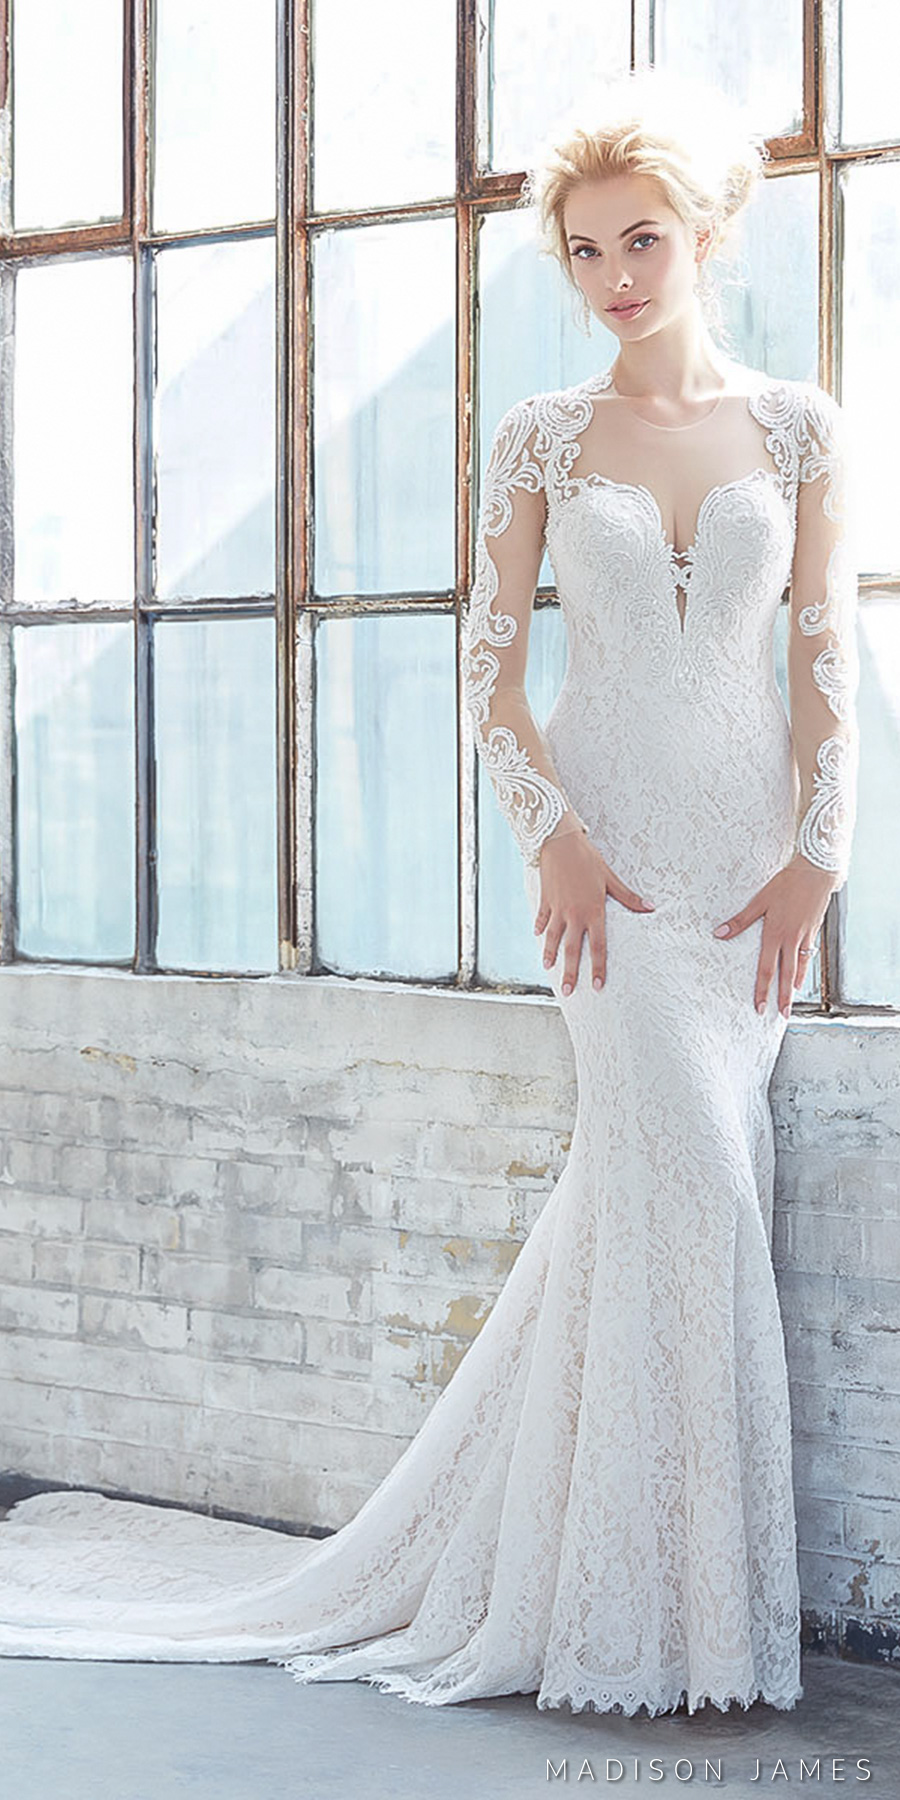 madison james spring 2017 bridal long sleeveless queens anne deep plunging sweetheart neckline full embroidered lace elegant sheath wedding dress sheer keyhole back chapel train (mj309) mv